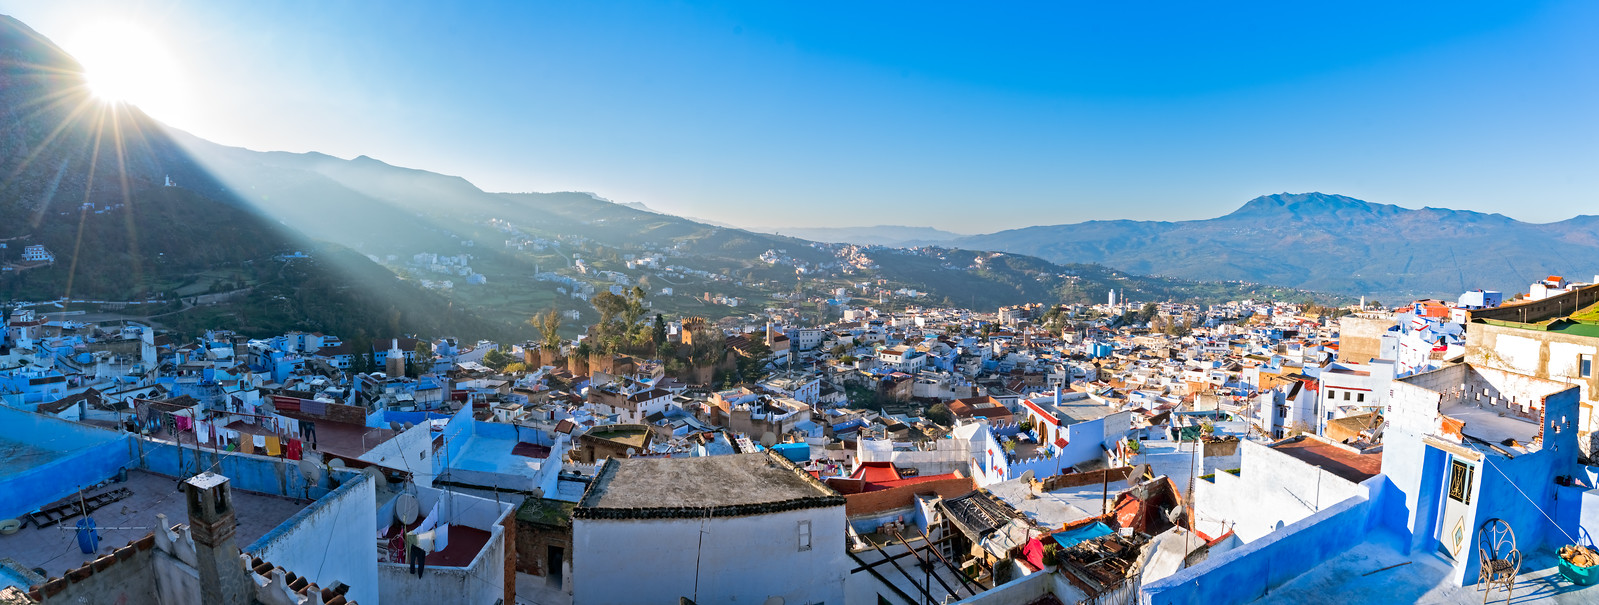 Sunrise over Chefchaouen Morocco - cycling vacation and photography tour with Kevin Wenning